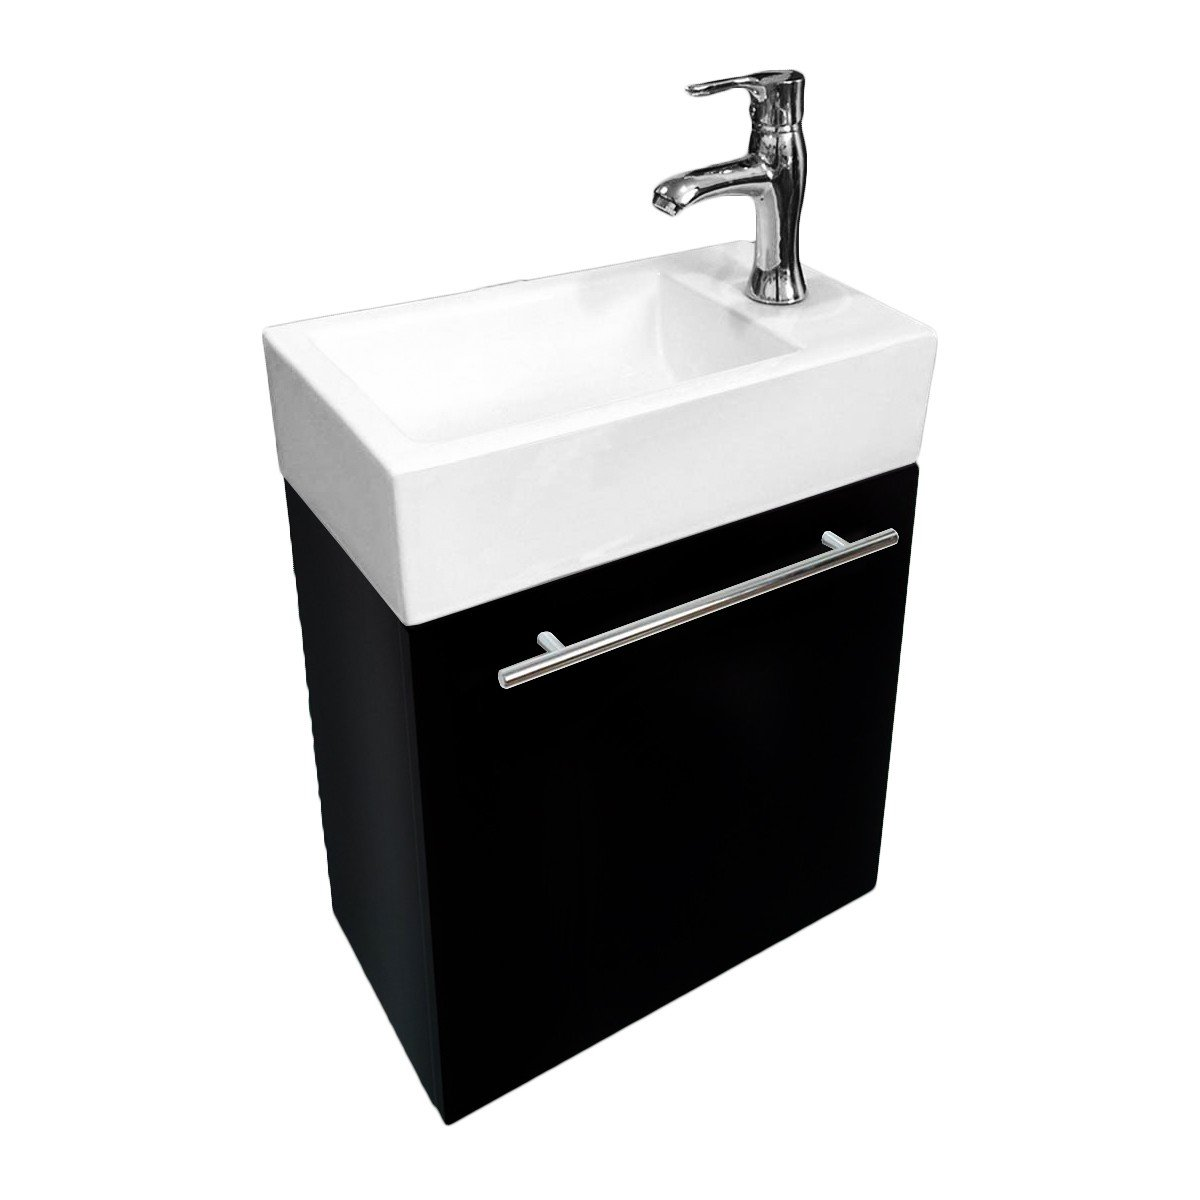 Small Bathroom Sinks Amazon Com